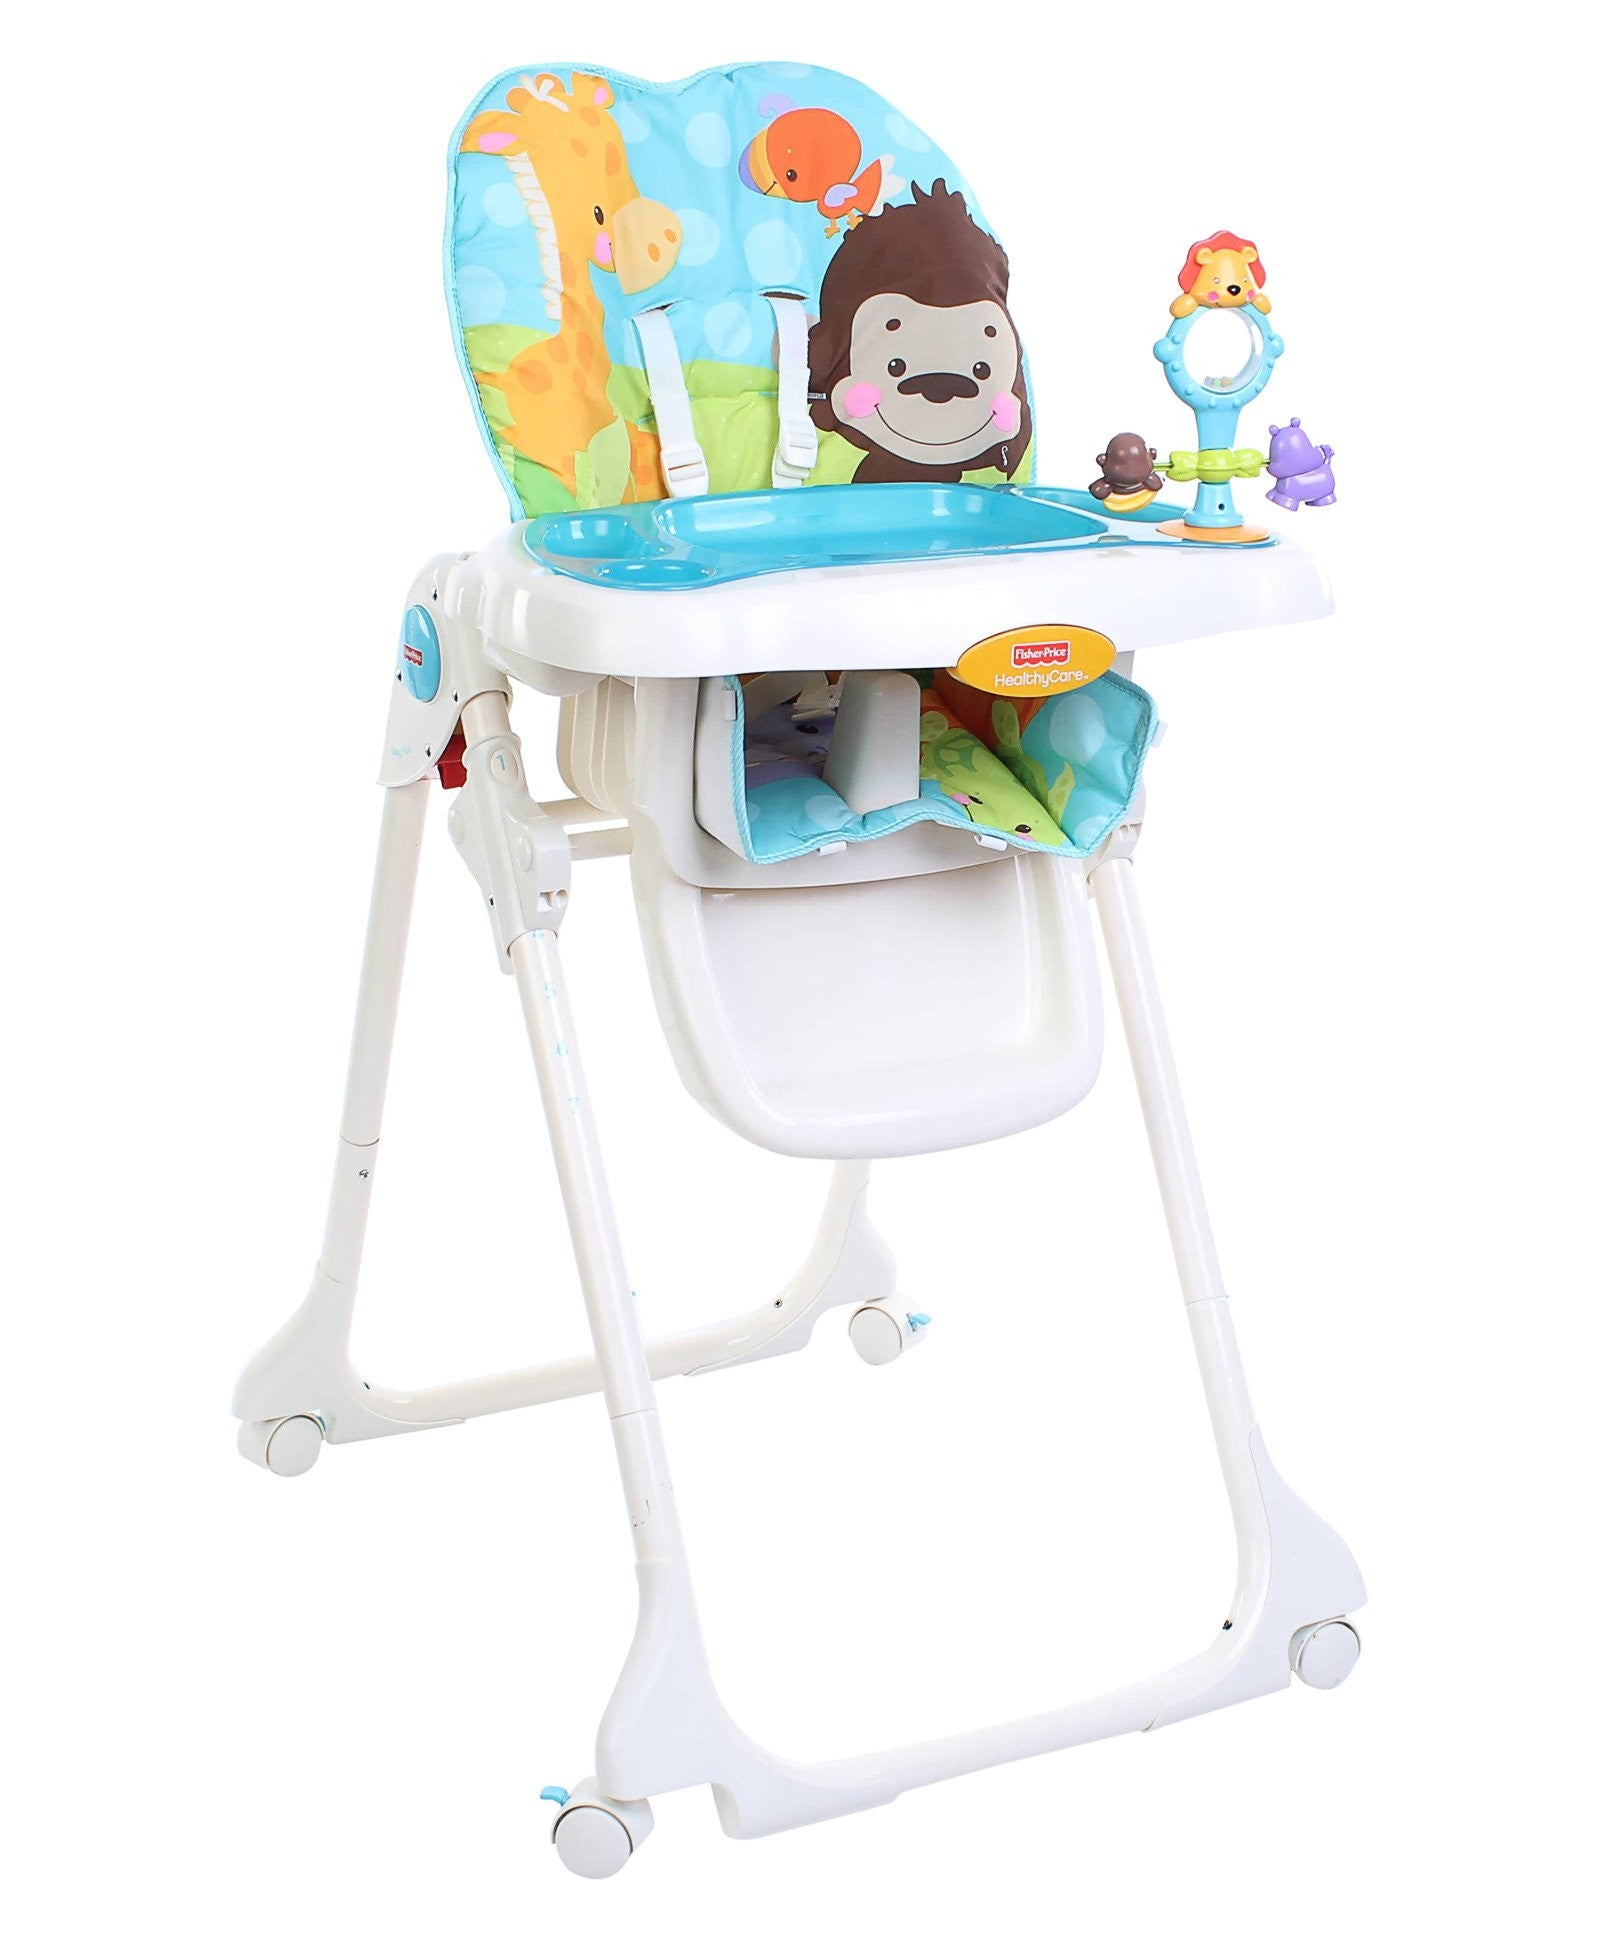 Top 5 most popular baby high chairs in India – The Gbabe